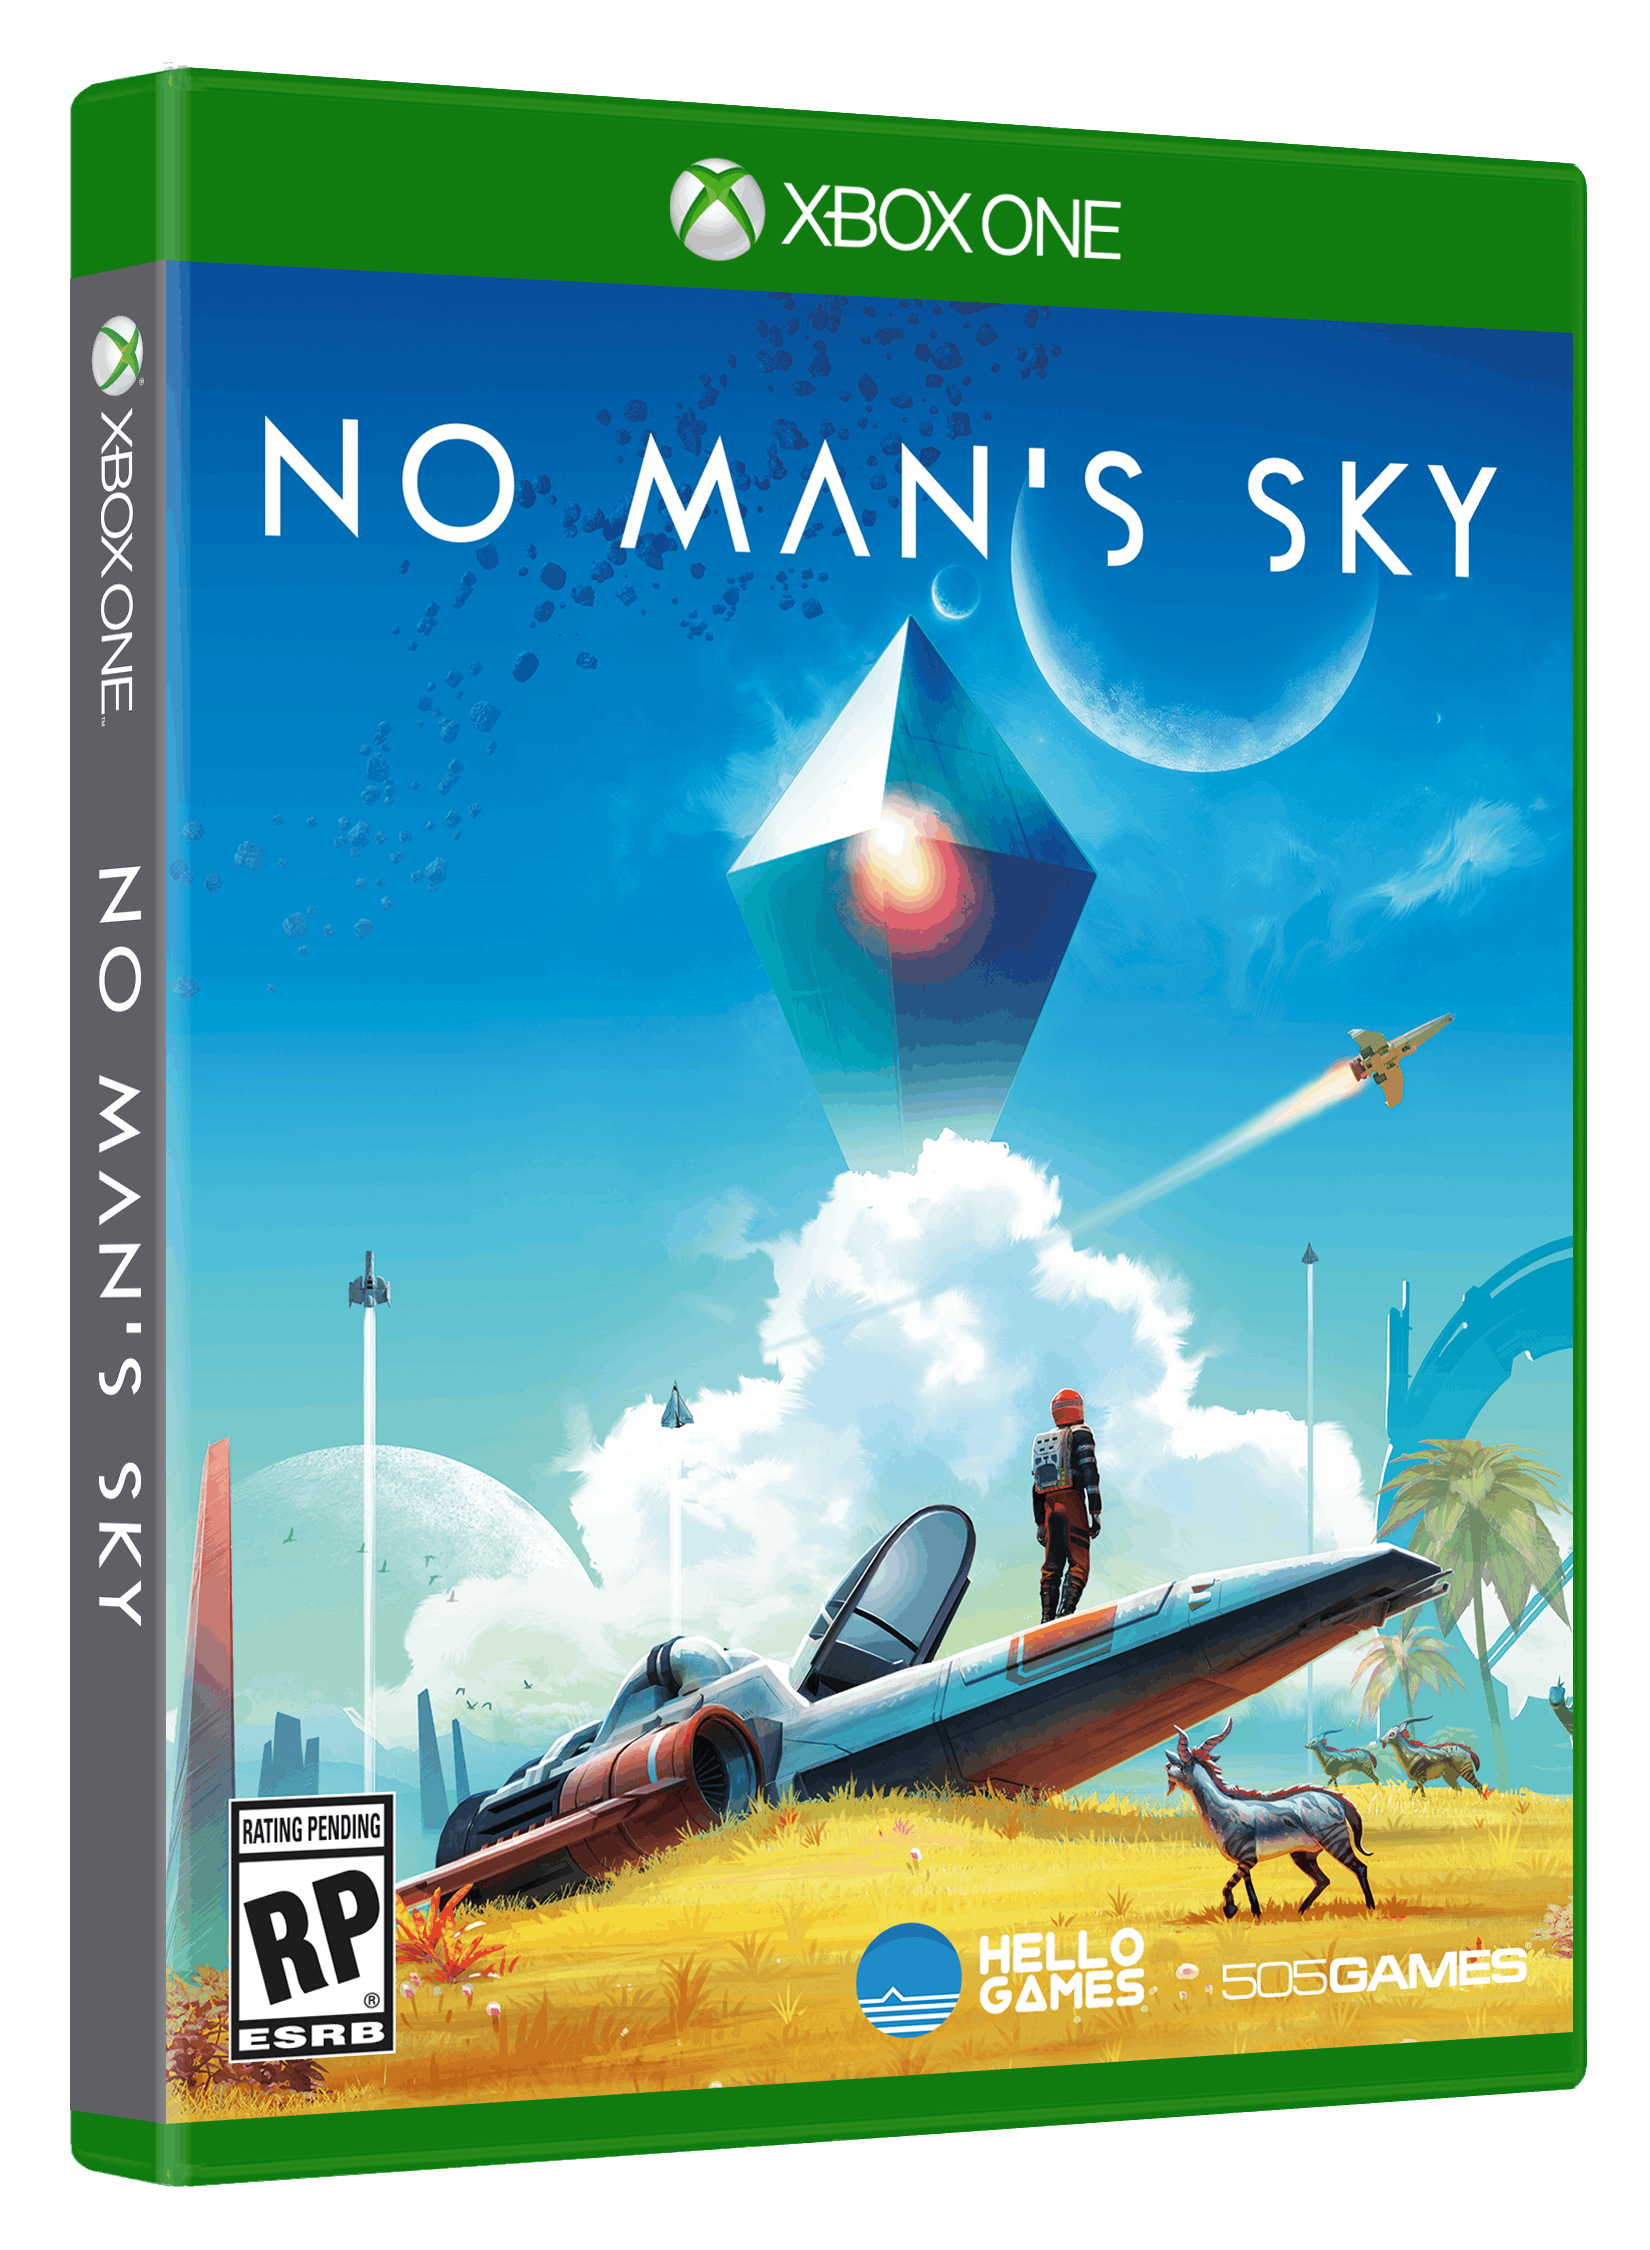 box-art-for-no-mans-sky-on-the-xbox-one.